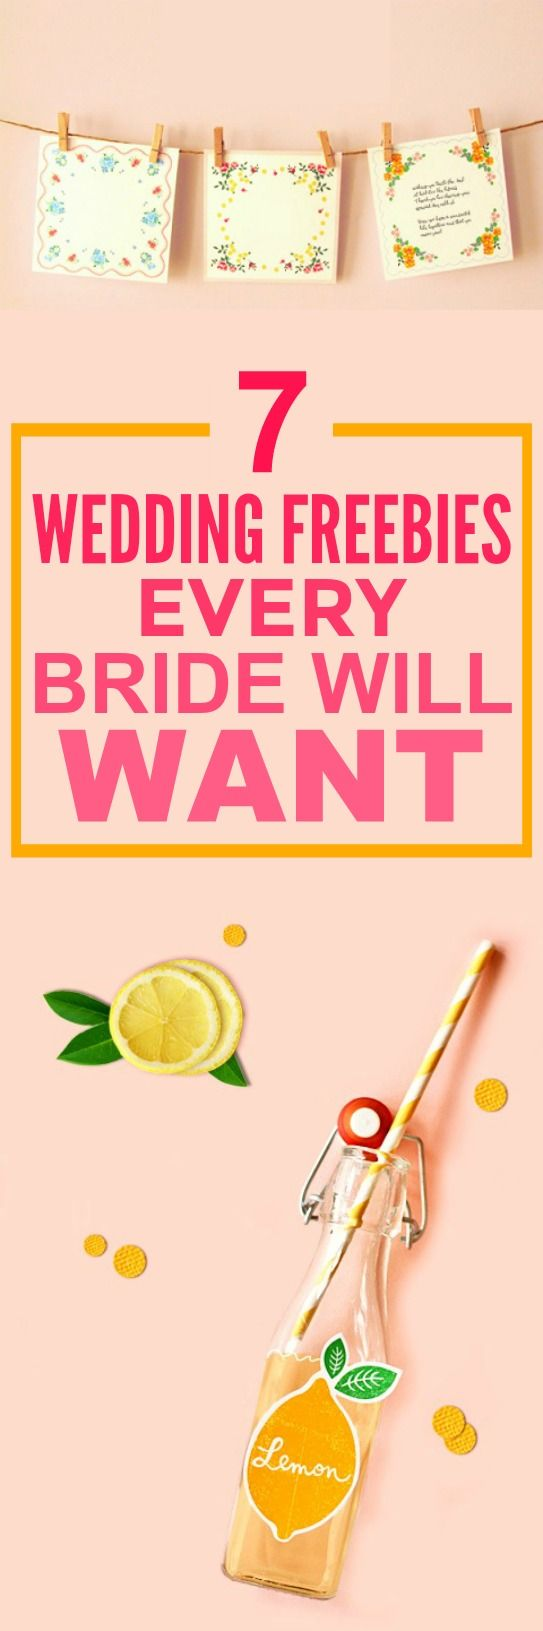 Wedding freebies a complete list of free wedding stuff and how to 7 wedding freebie hacks from the experts junglespirit Image collections